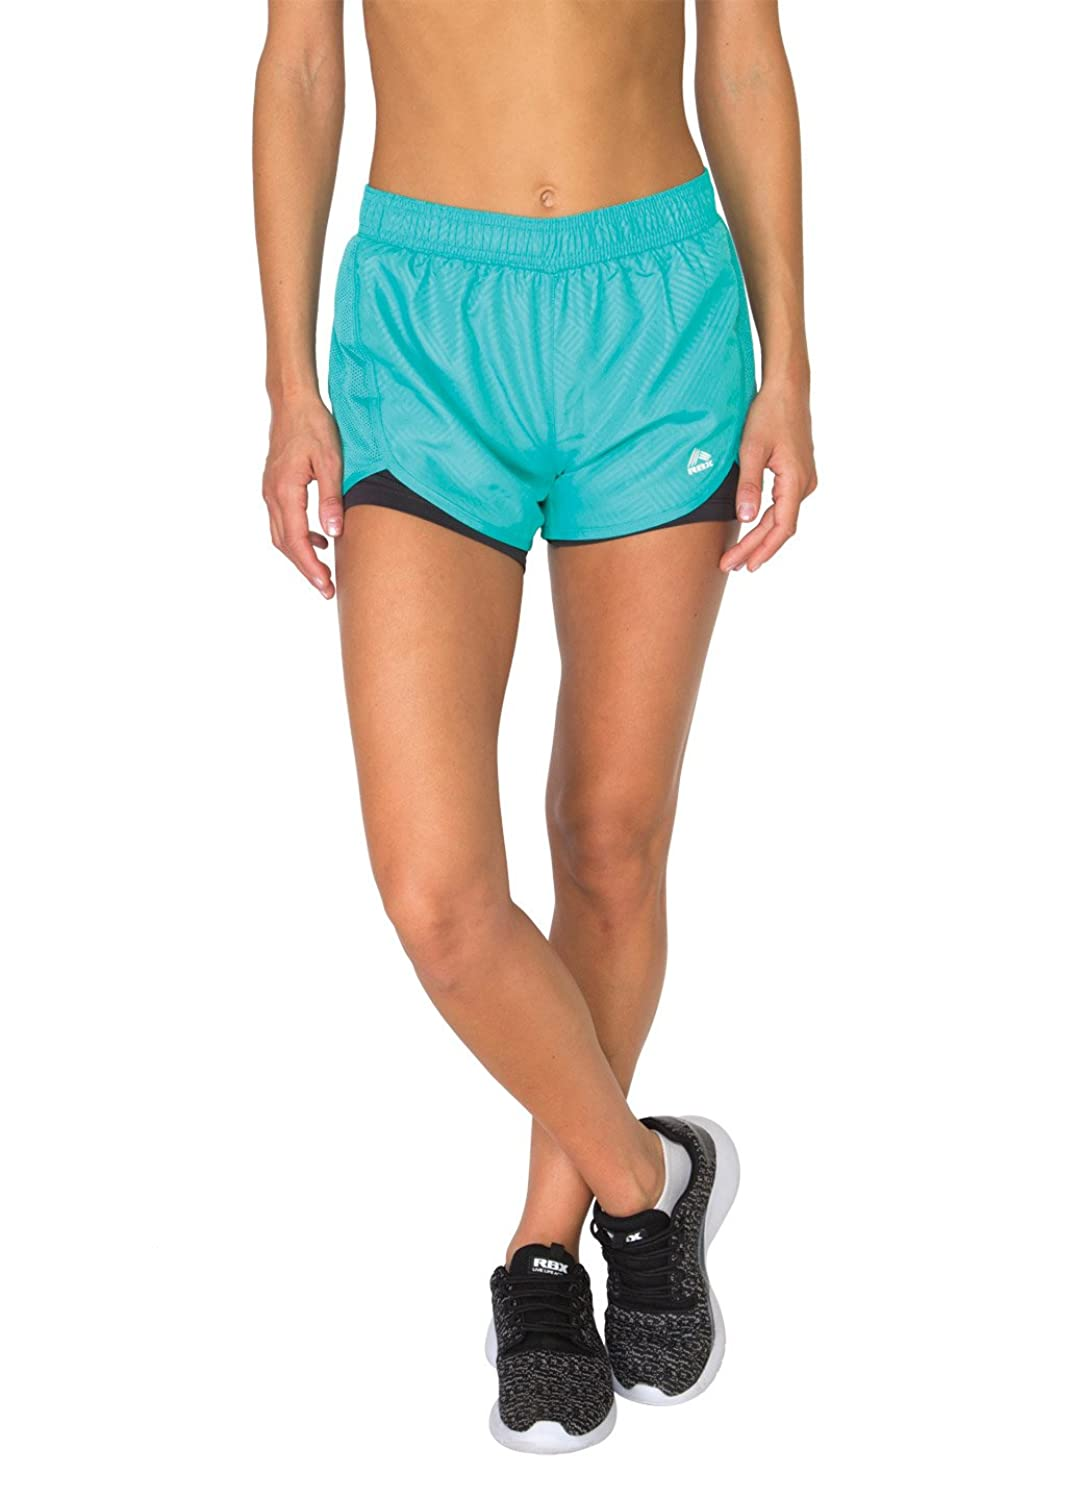 RBX Active Women's Printed Traditional Running Short with Inner Compression